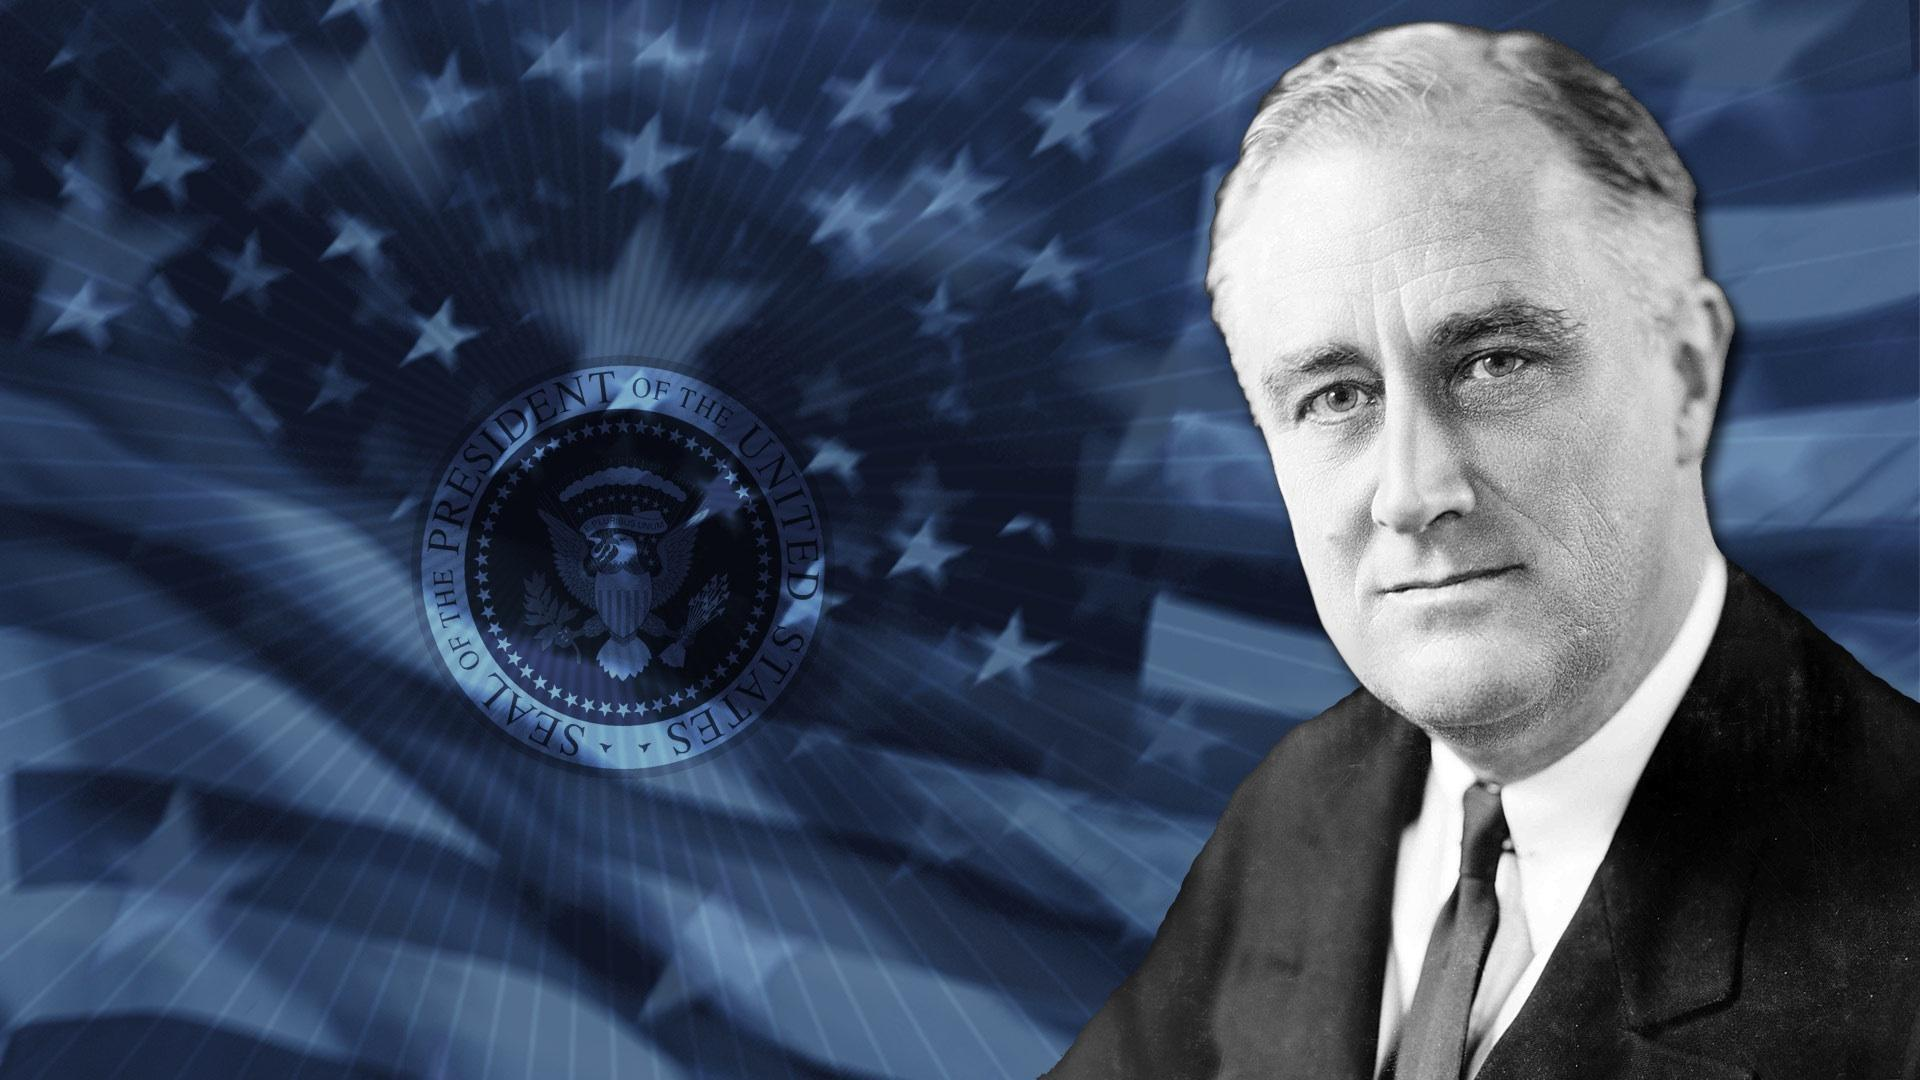 biography of franklin d roosevelt one of the greatest american presidents Roosevelt served as commander in chief of the armed forces and planned with great britain and the soviet union strategies for the military defeat franklin roosevelt, american presidents—life portraits president franklin d roosevelt is one of the best known democrats in.